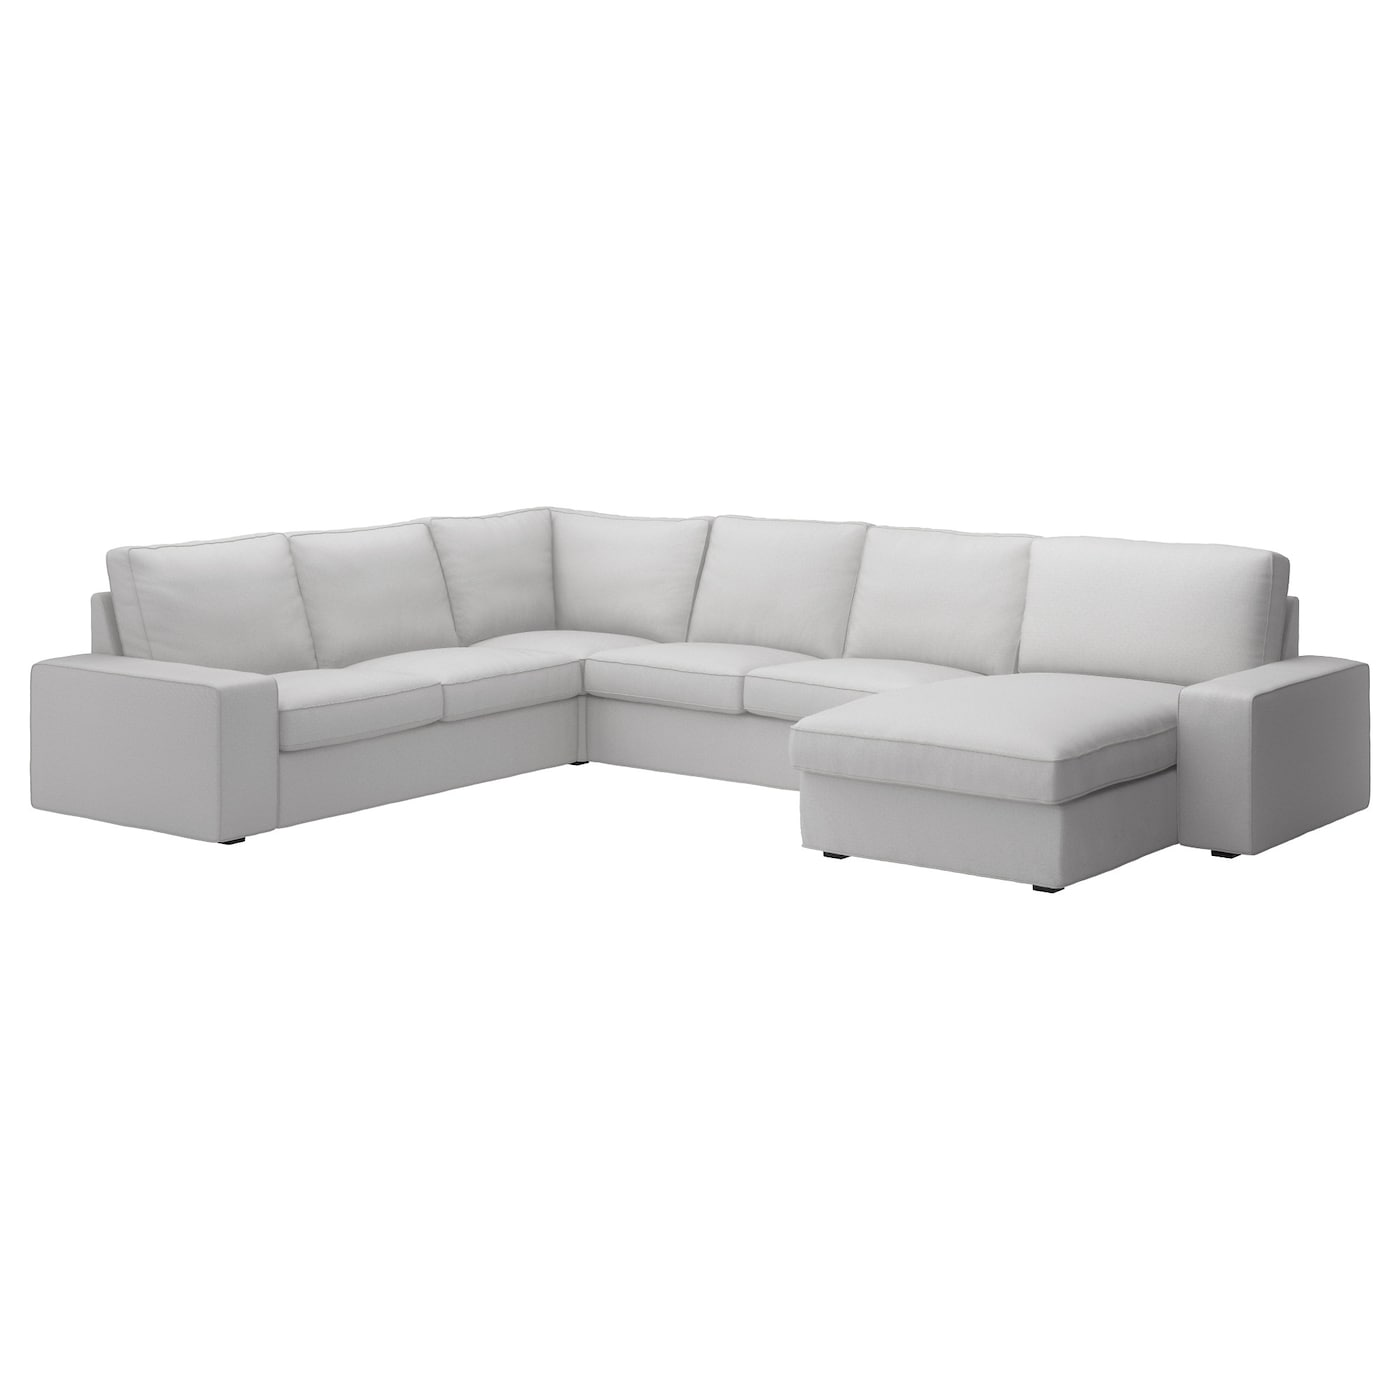 Kivik corner sofa 2 2 with chaise longue ramna light grey for Chaise longue sofa